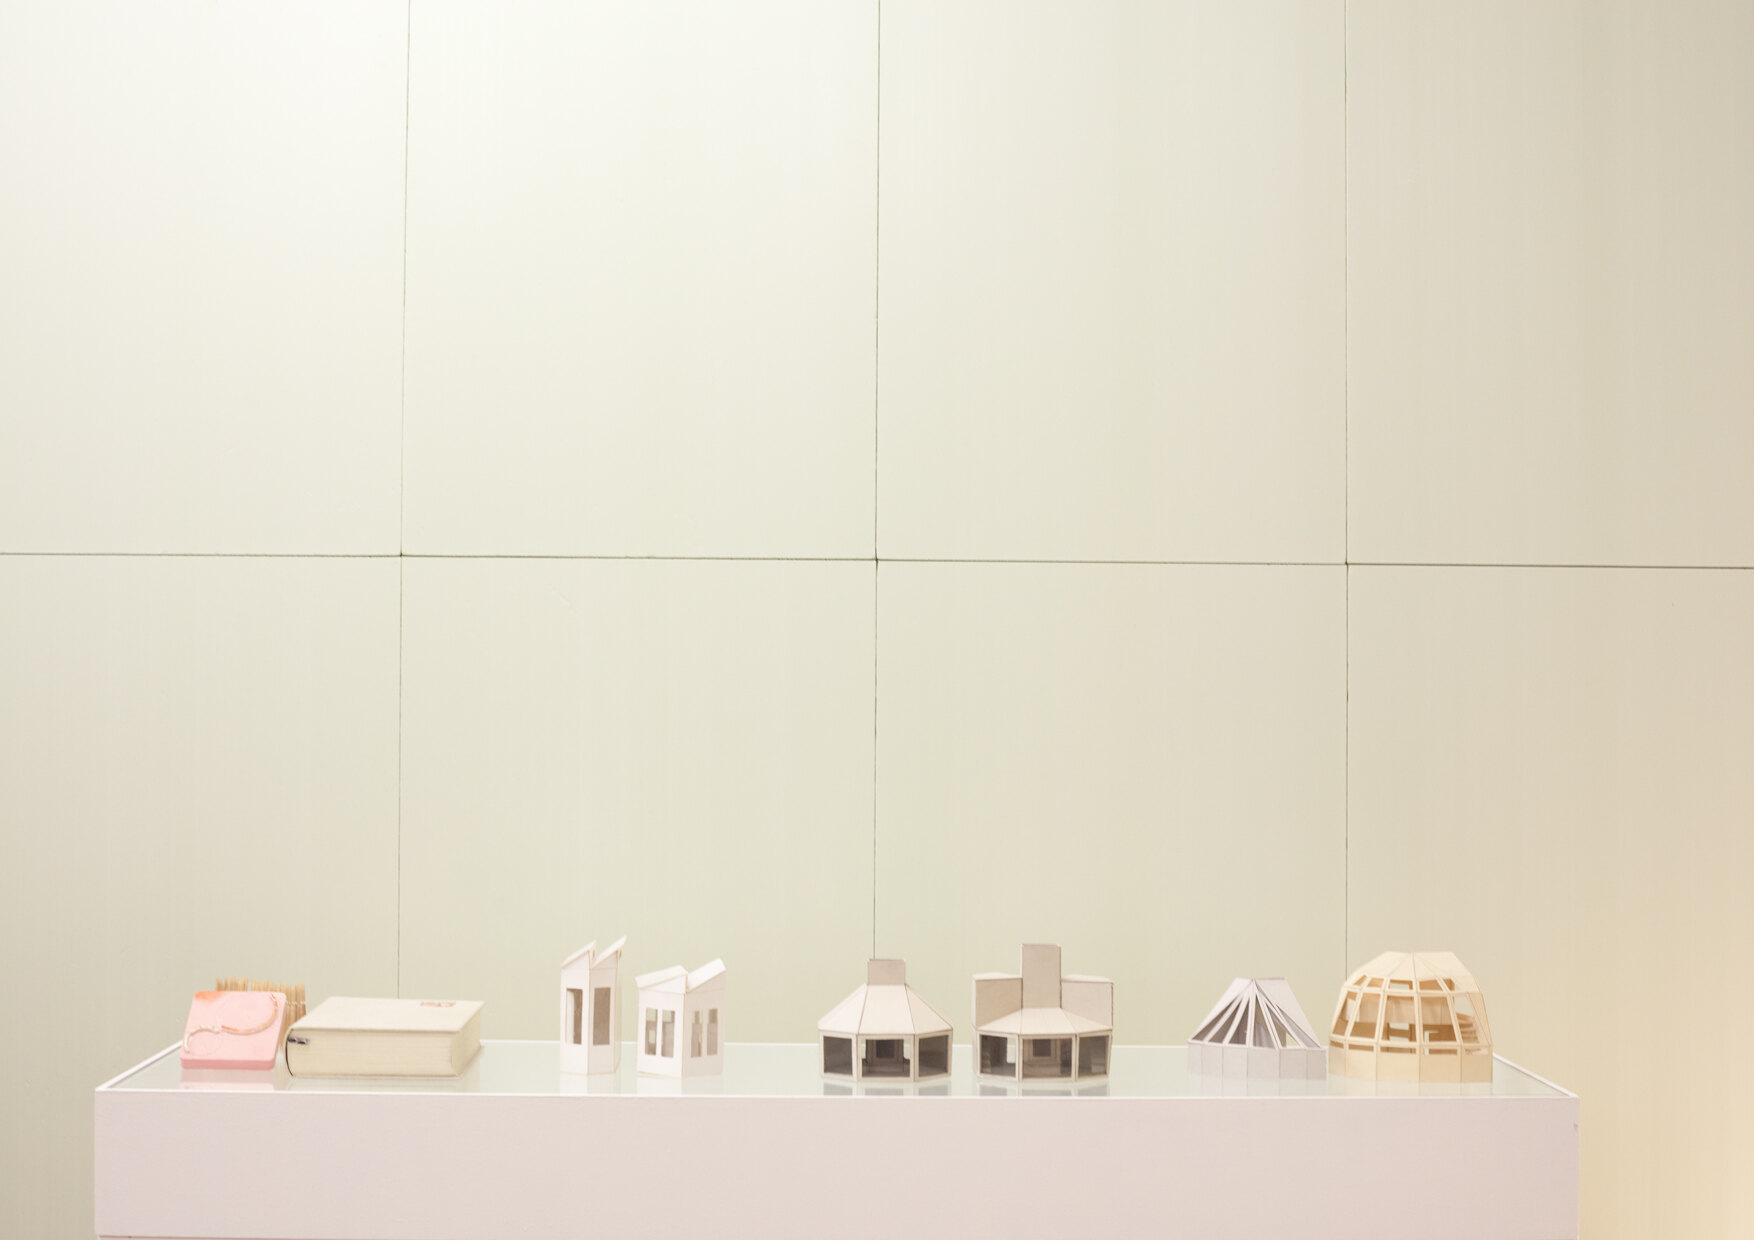 ARCH+ features 44: MODELLE, Foto: Micki Rosi Richter